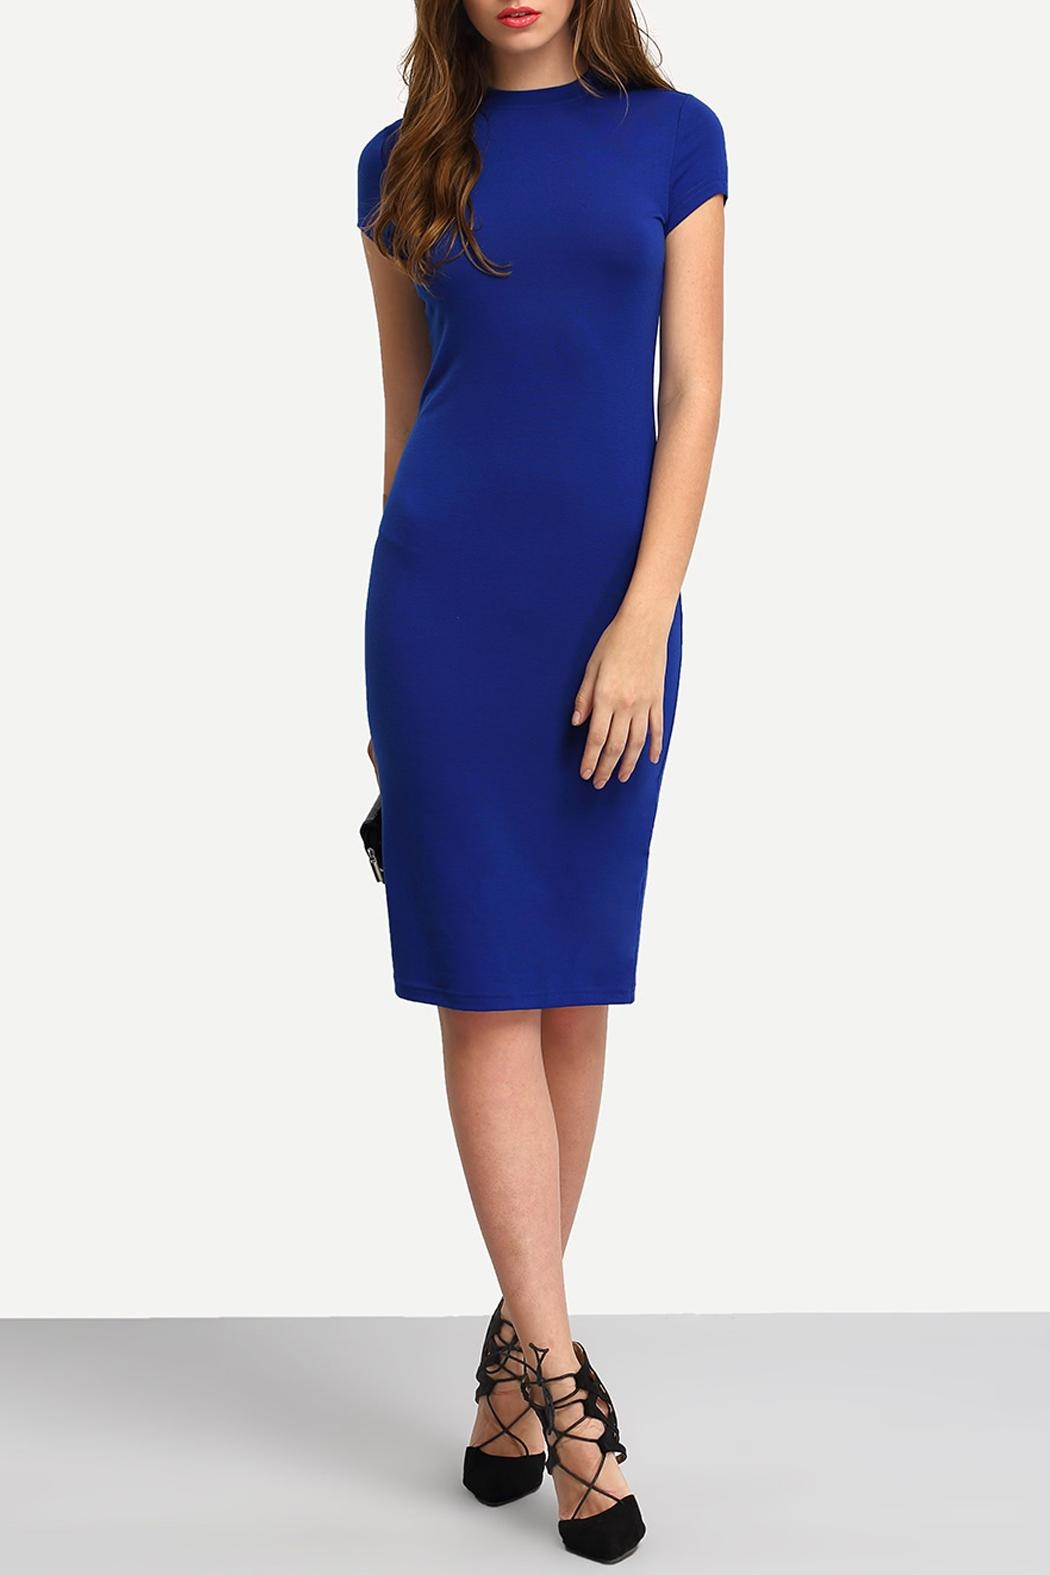 House of Atelier Blue Bodycon Dress - Back Cropped Image